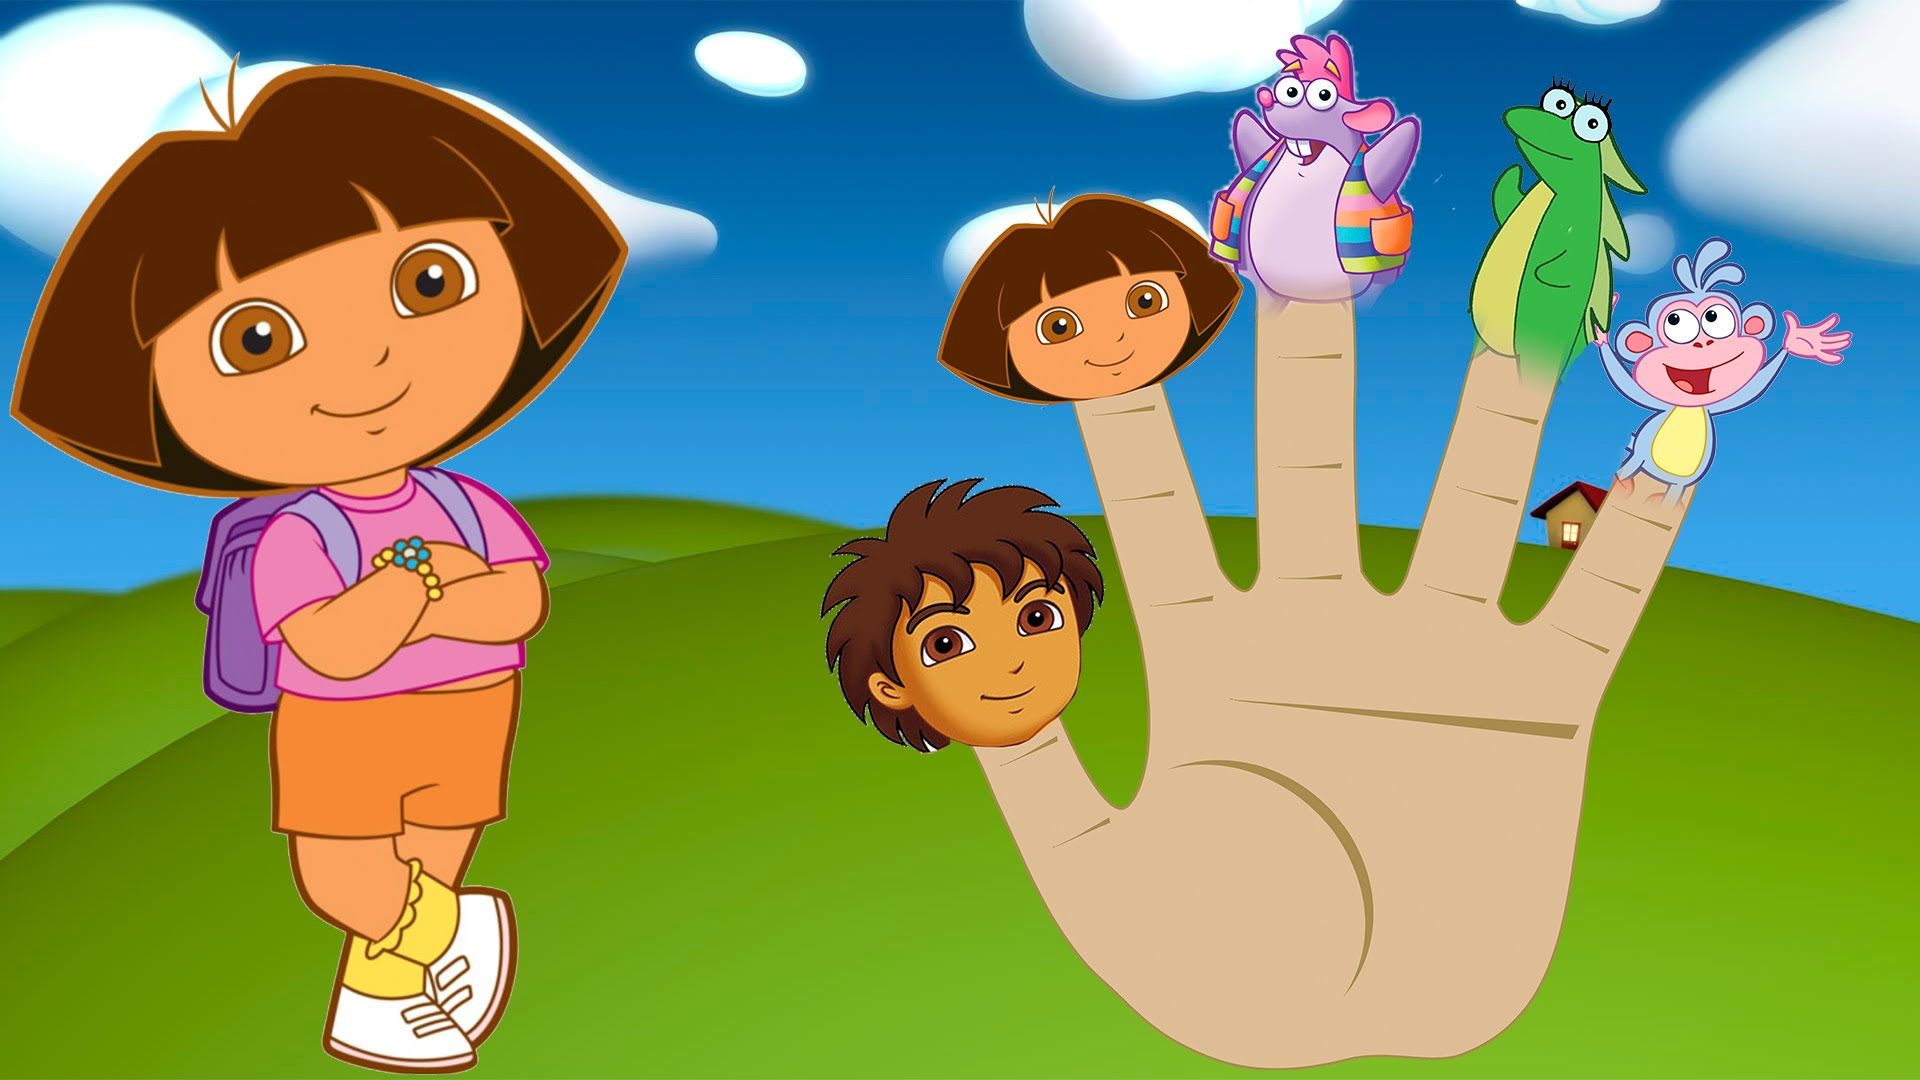 Wallpaper hd dora wallpapers pic wpb008977 wallpaper download voltagebd Image collections